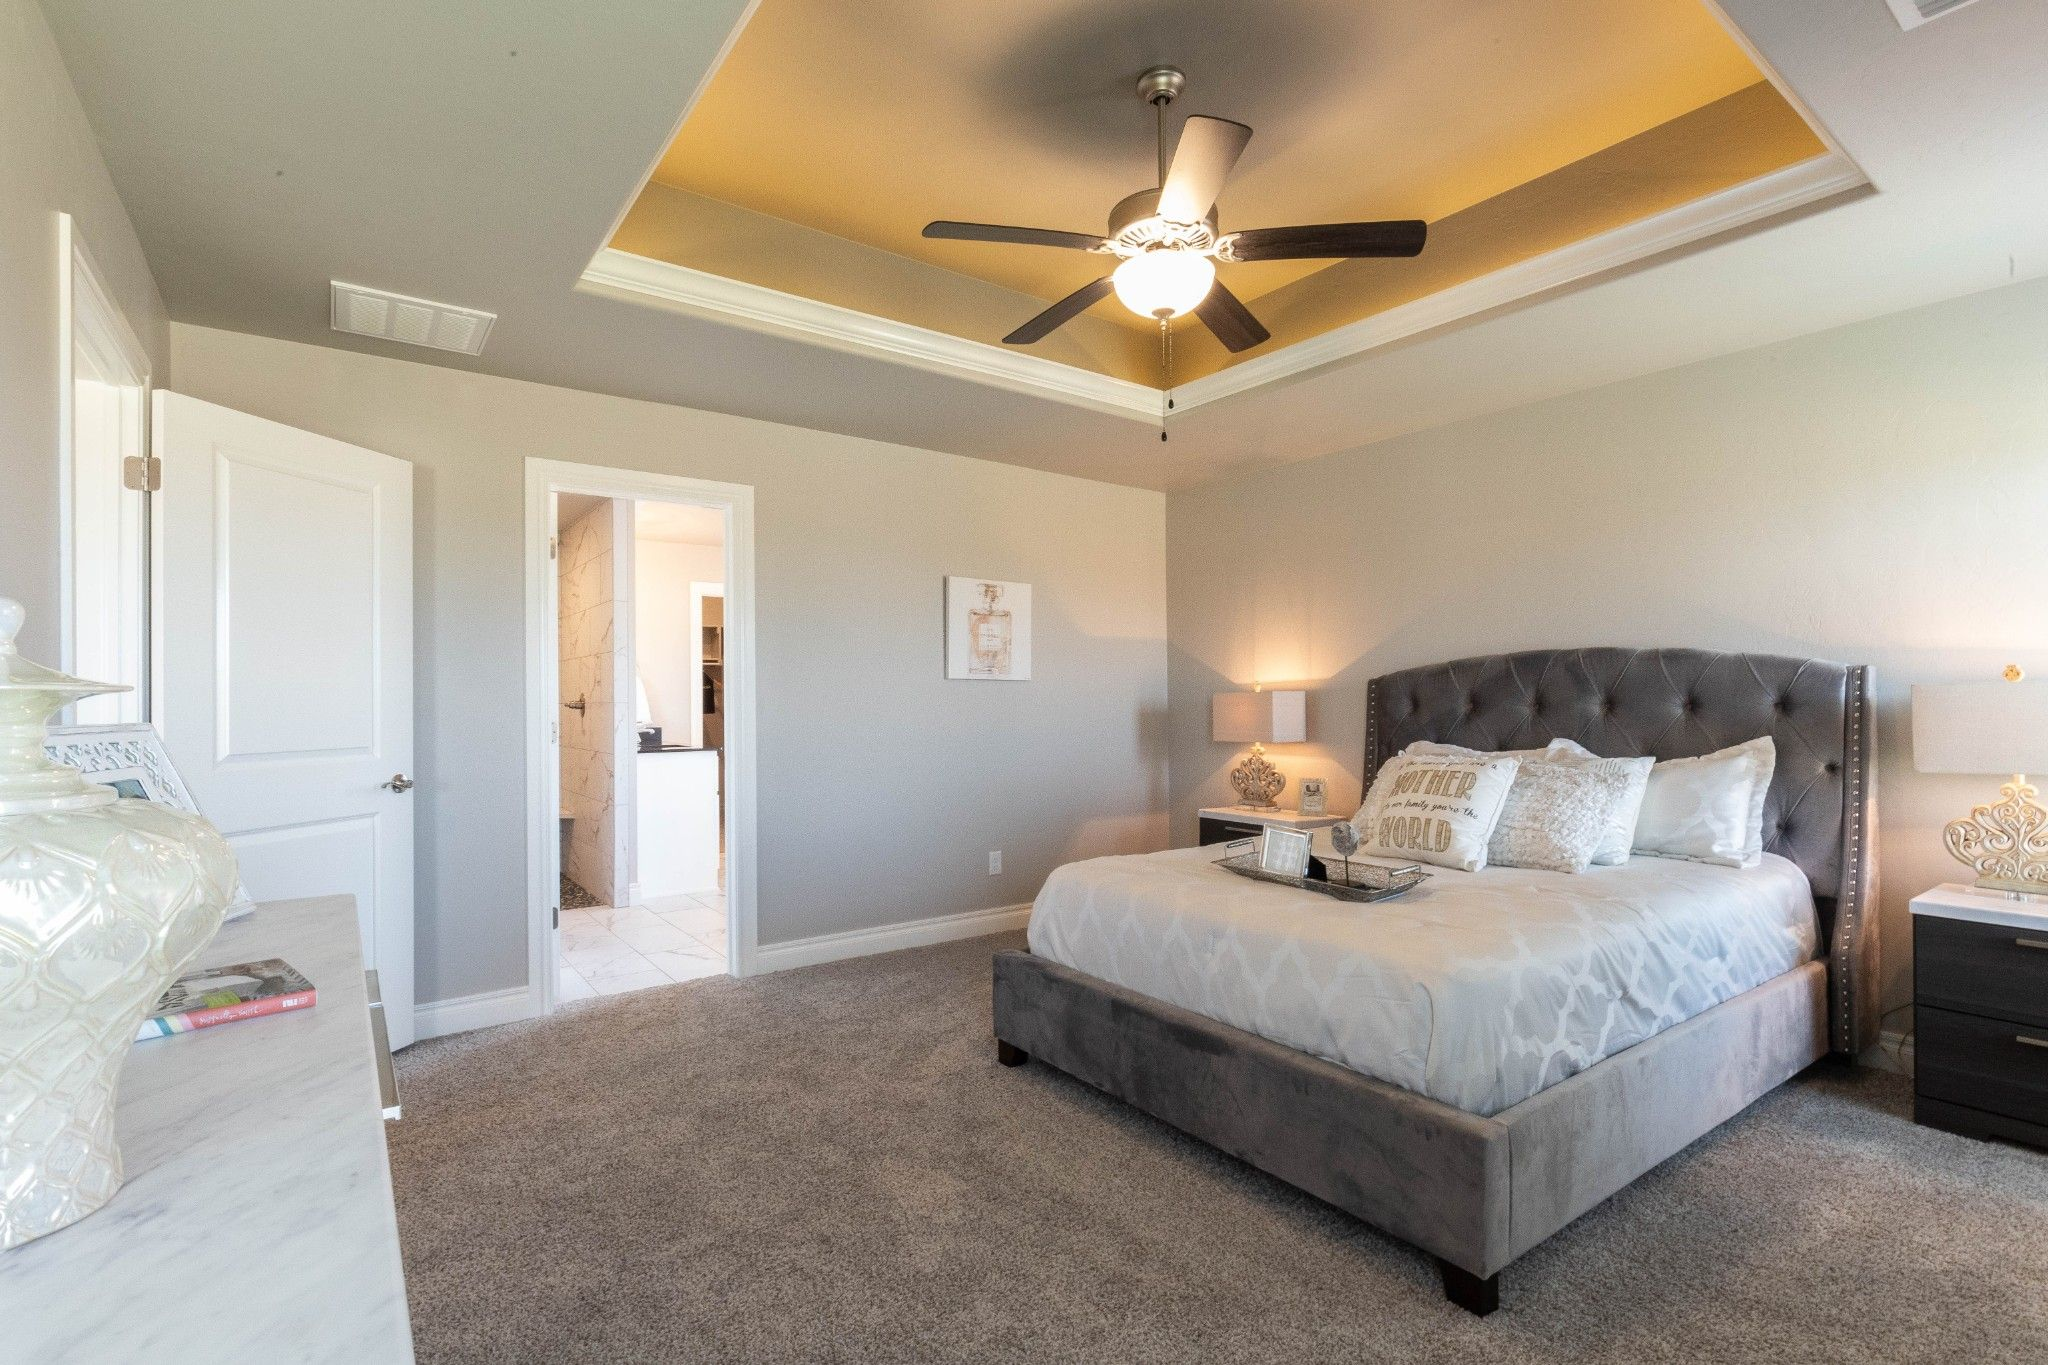 Bedroom featured in the Cornerstone Bonus Room - 5 Bedroom By Homes By Taber in Oklahoma City, OK